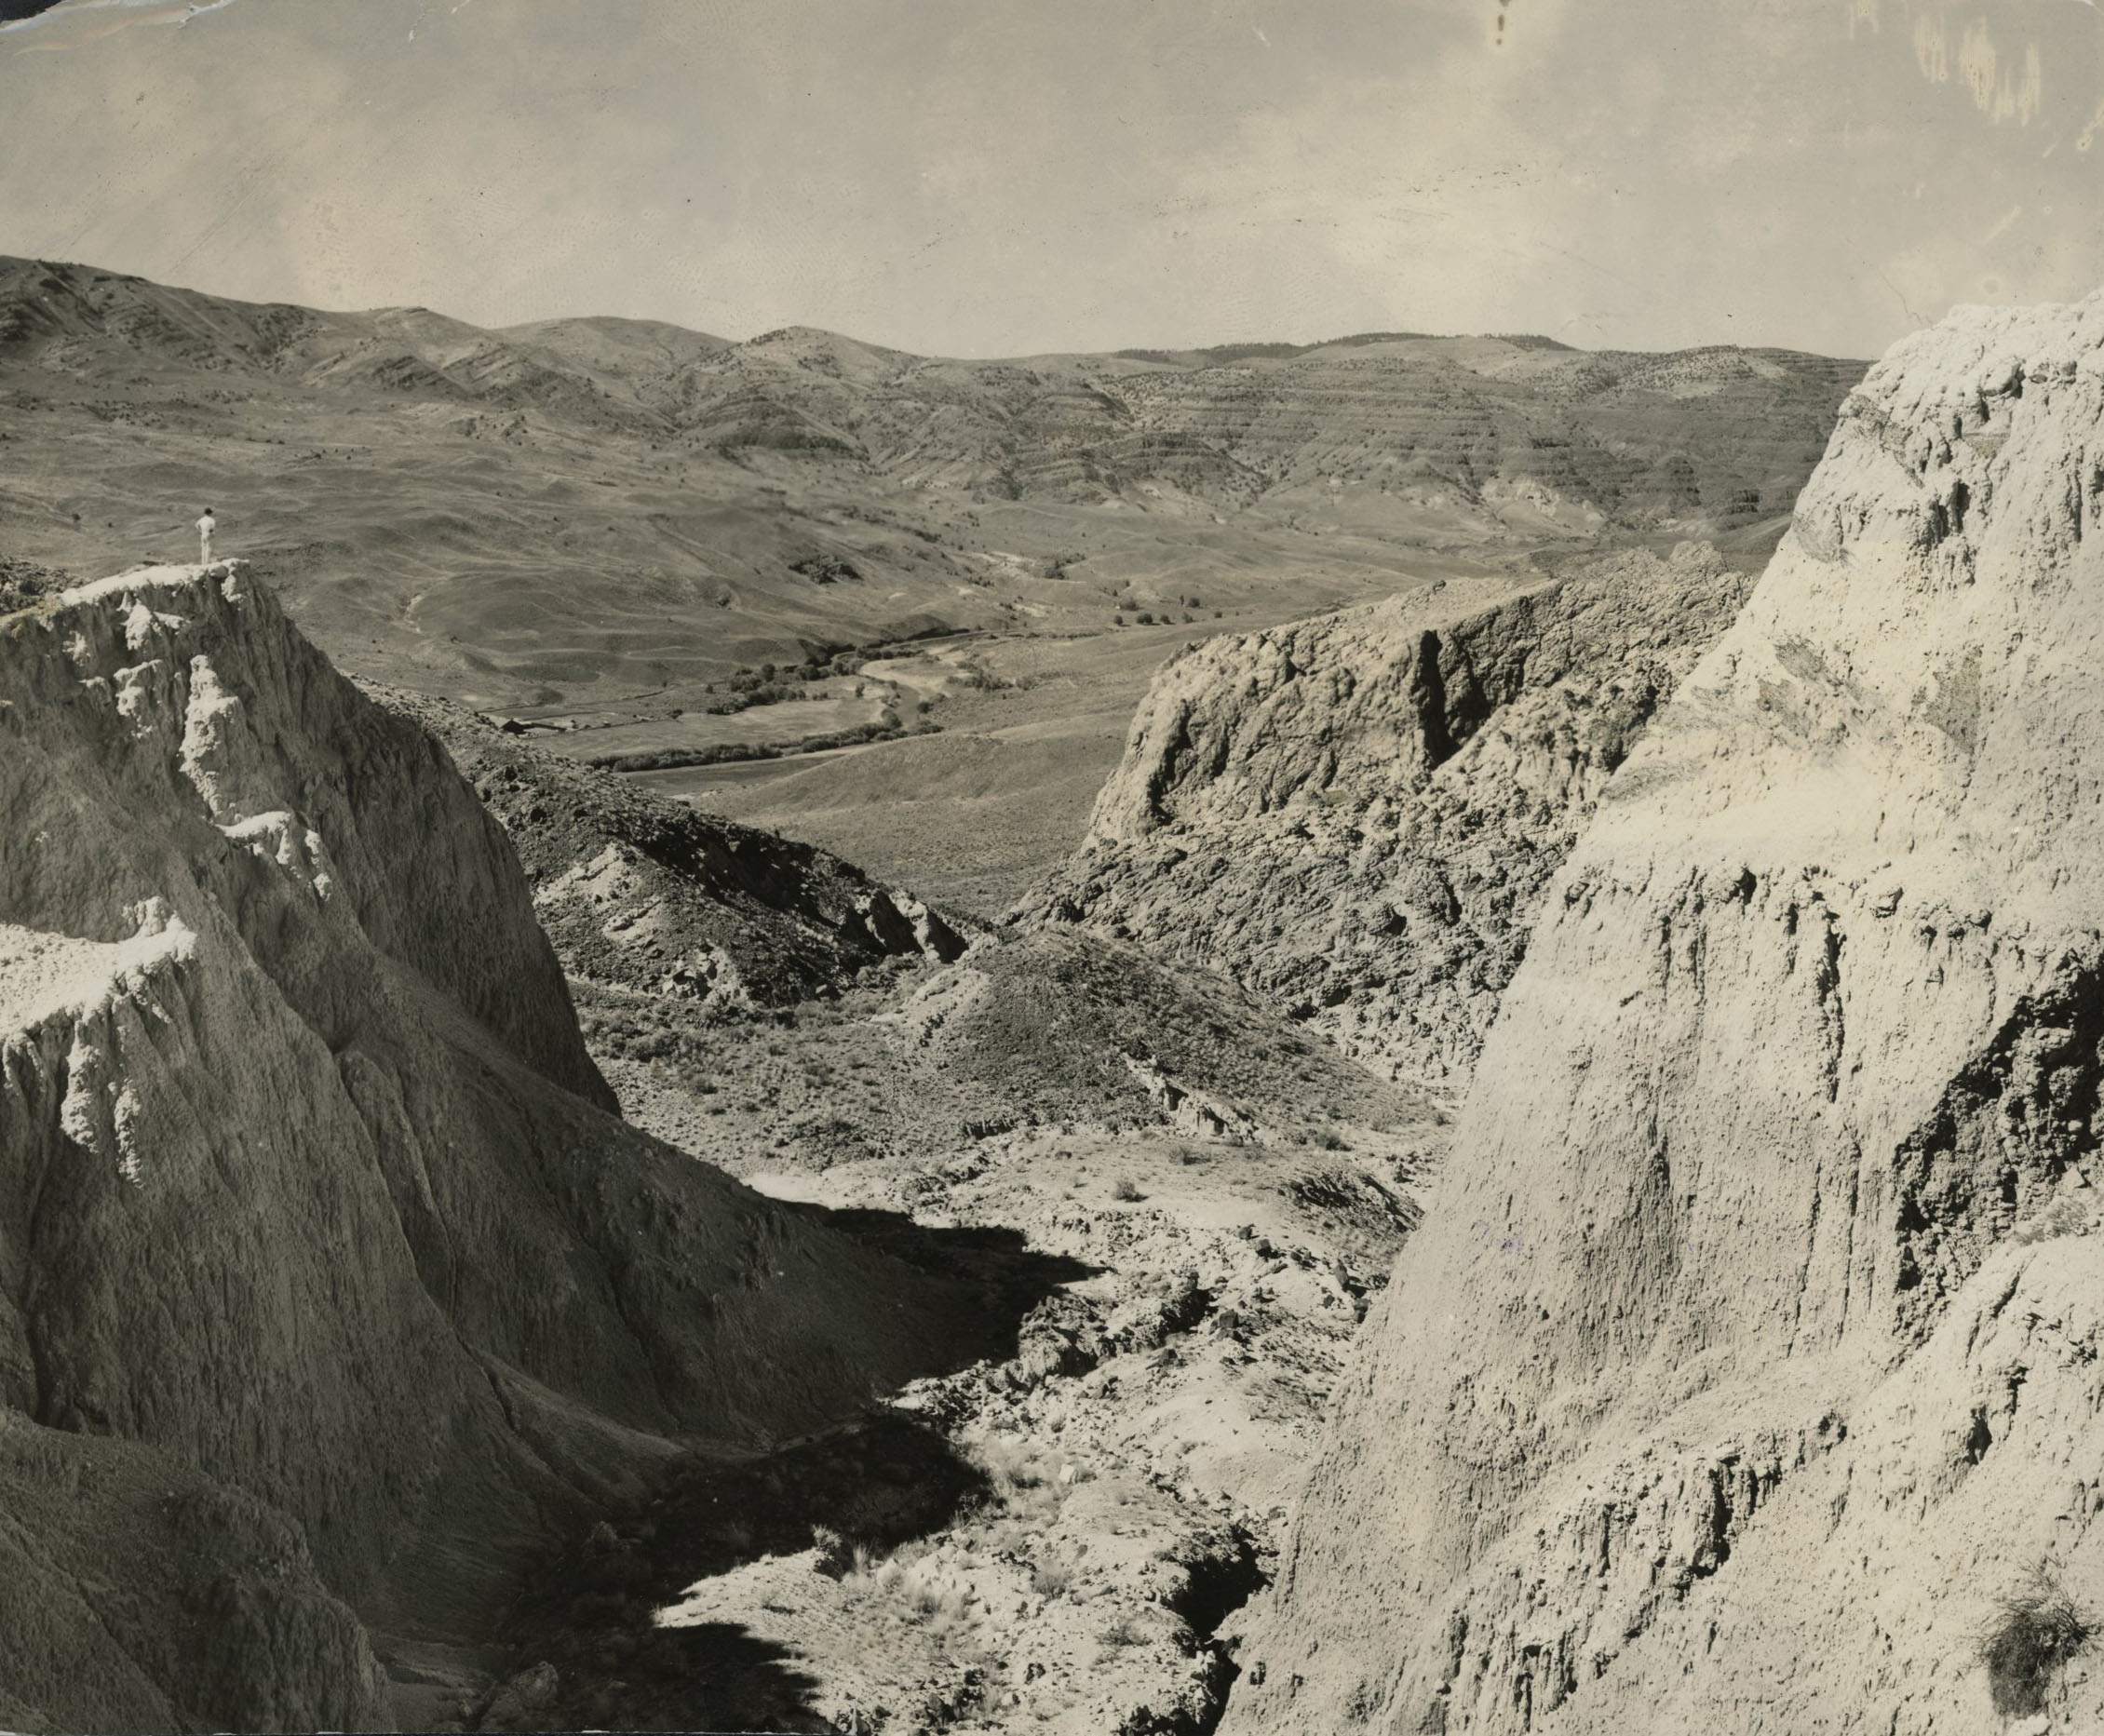 John Day Canyon, 1937